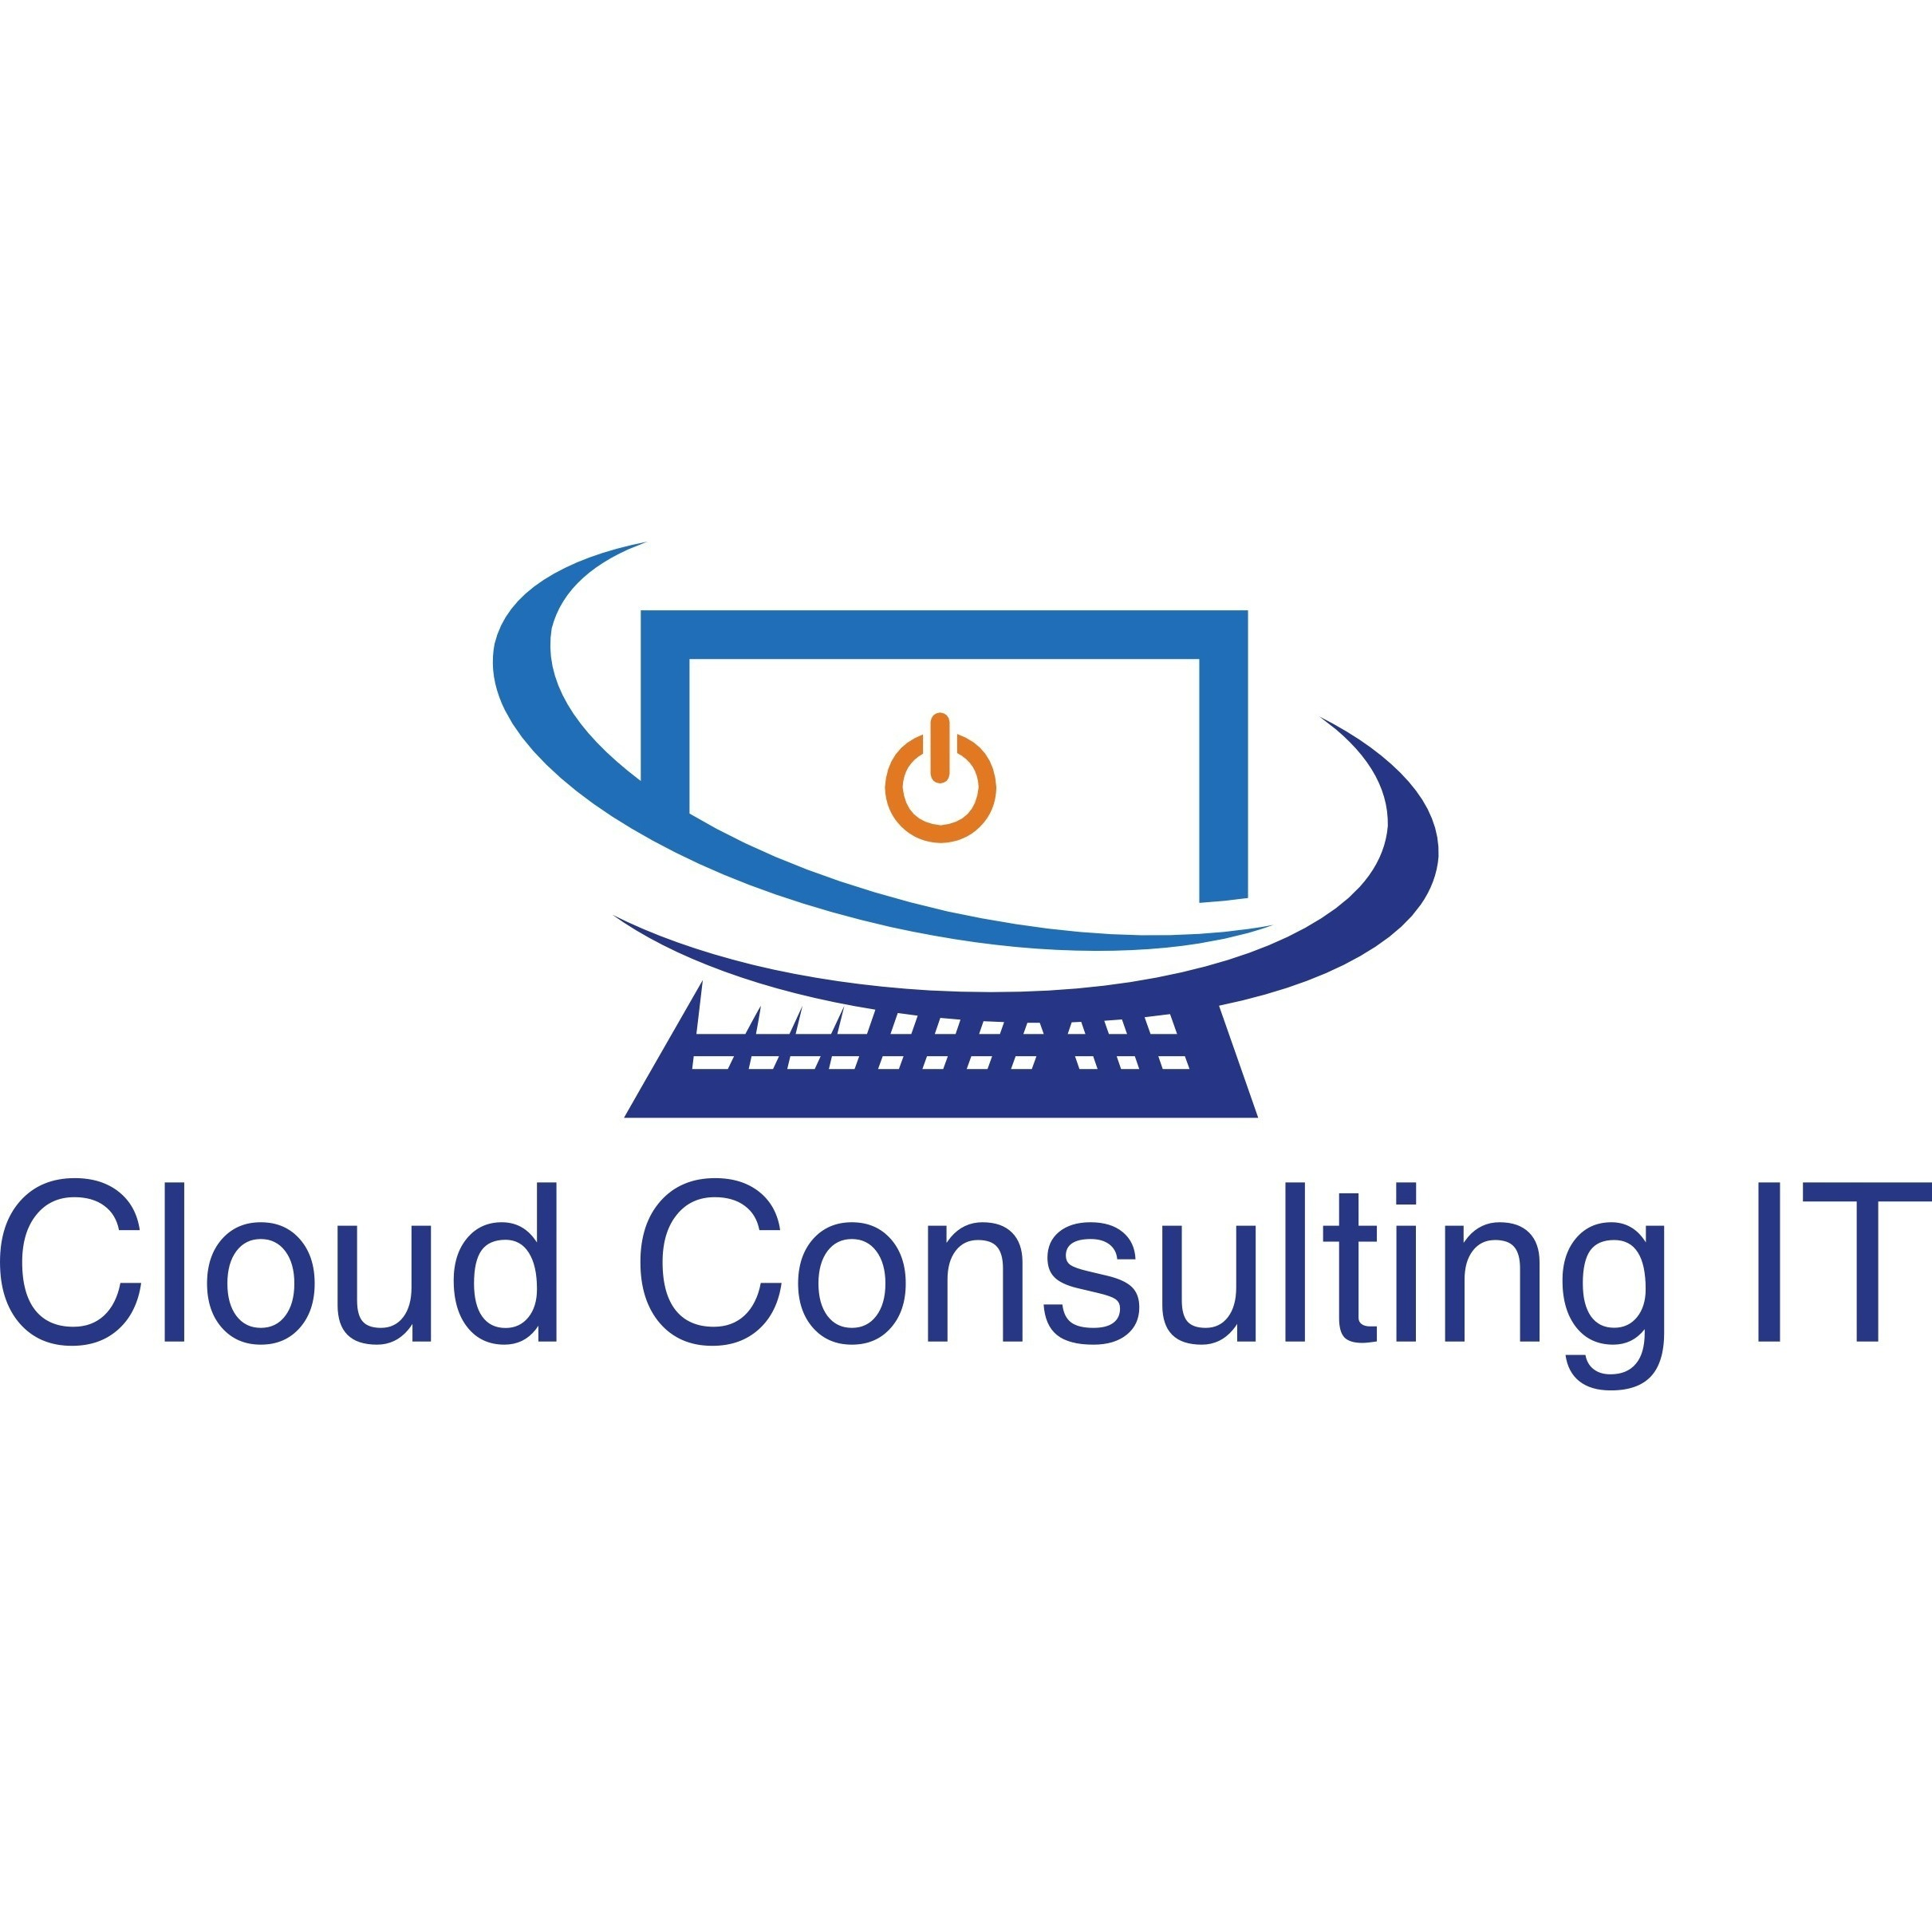 IT Cloud Consulting Services image 7